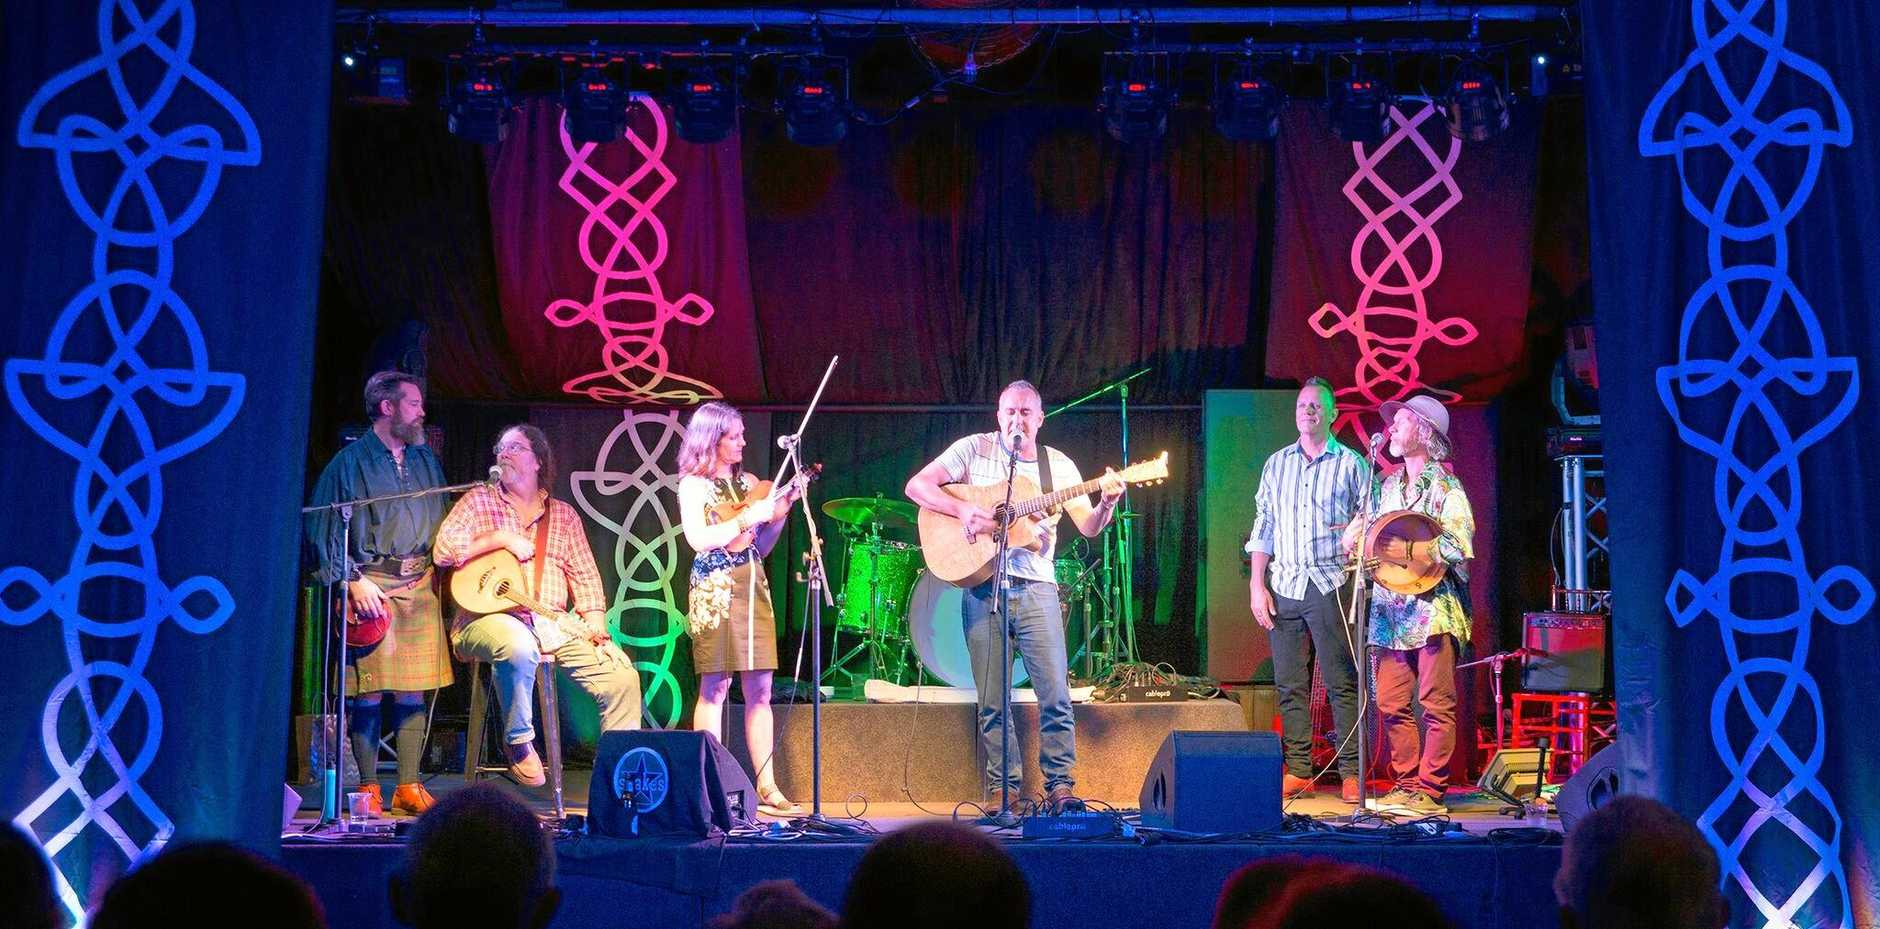 Plenty of action on the stage at the Celtic Festival in Eumundi.